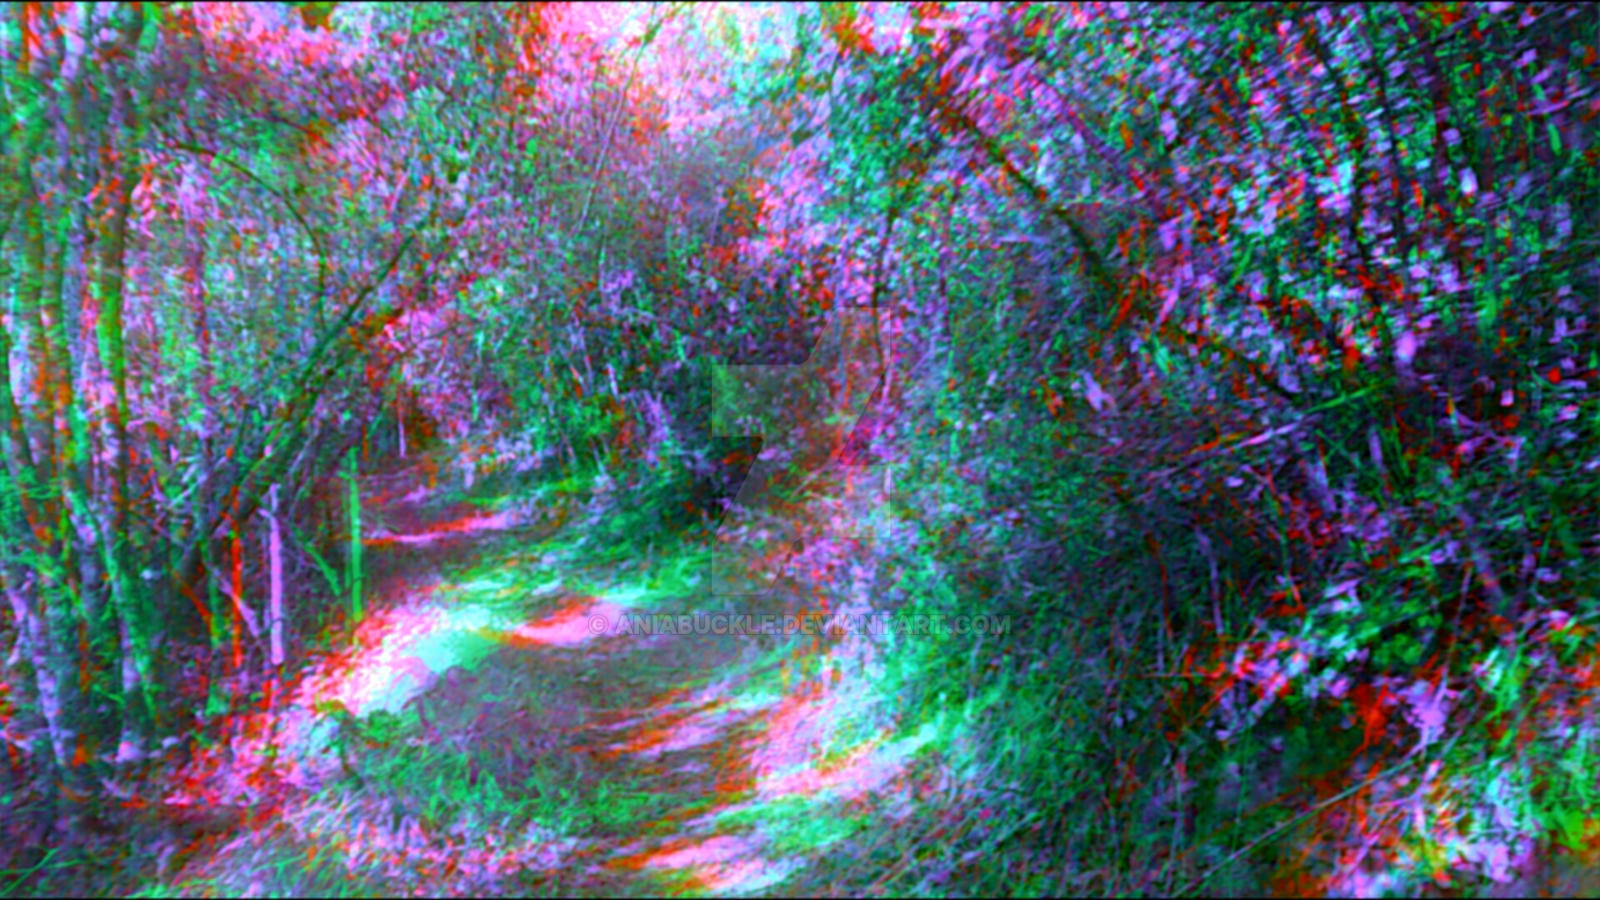 trippy forest 1 by aniabuckle on deviantart